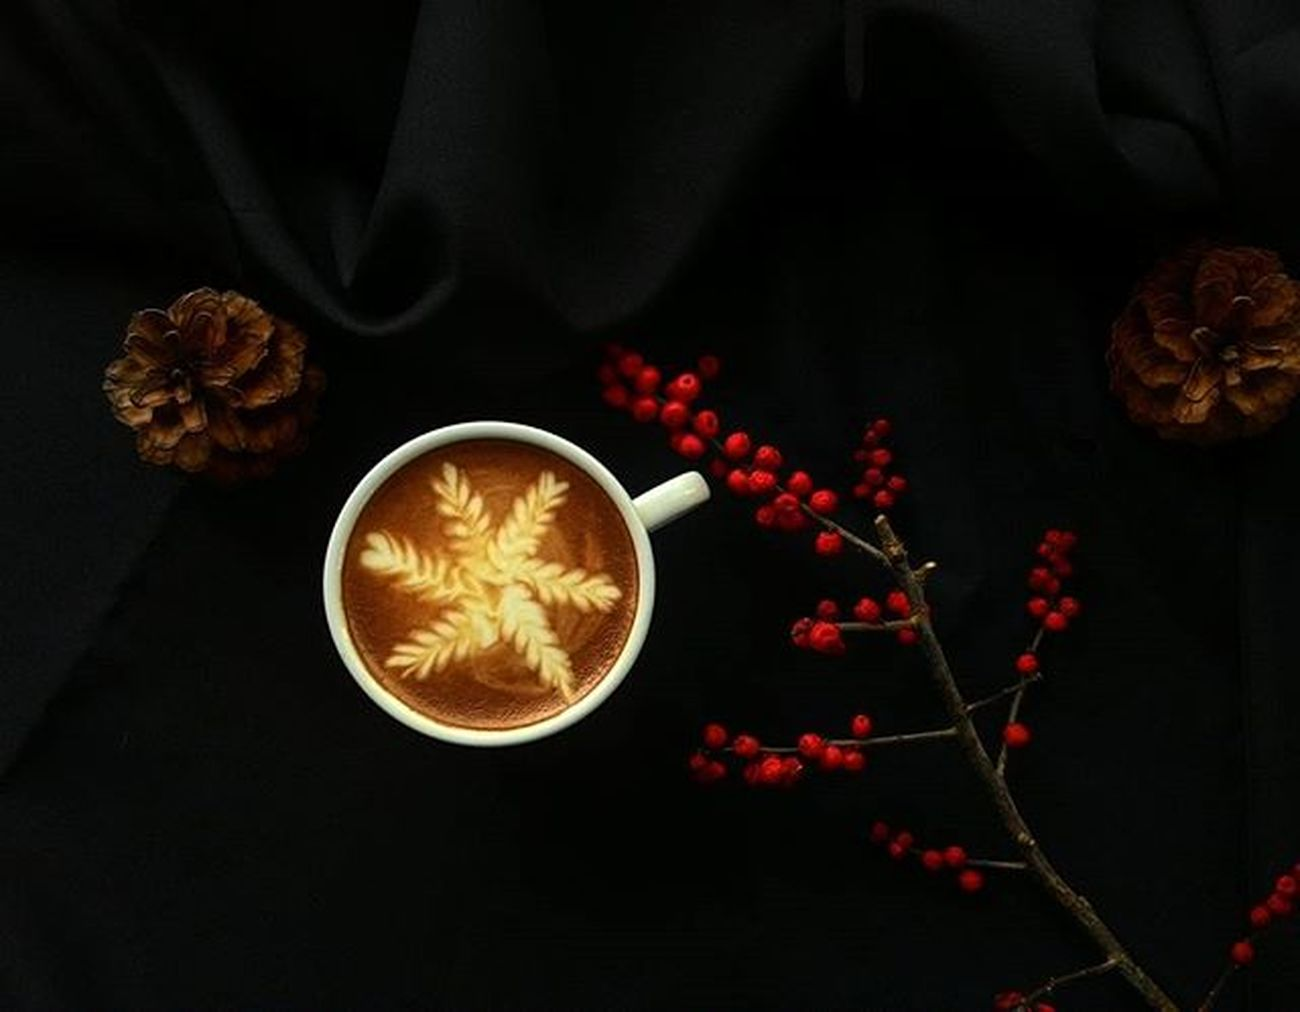 Happy friday🍁🍂🎄✌free pour latte art by alisa. Coffee Coffeeart Coffeelatte Casalapin Barista Freepour Freepourart Coffeegeek Coffeegram ArtOfLiving Artofcoffee Latteartporn Coffeeporn Bkkcafe CoffeeHunter Coffeephotography December Christmas RedBerry  Pinecone Happyseason Instacoffee Living VSCO Vscogood vscocoffee vscothailand thaistagram photoshoot photography